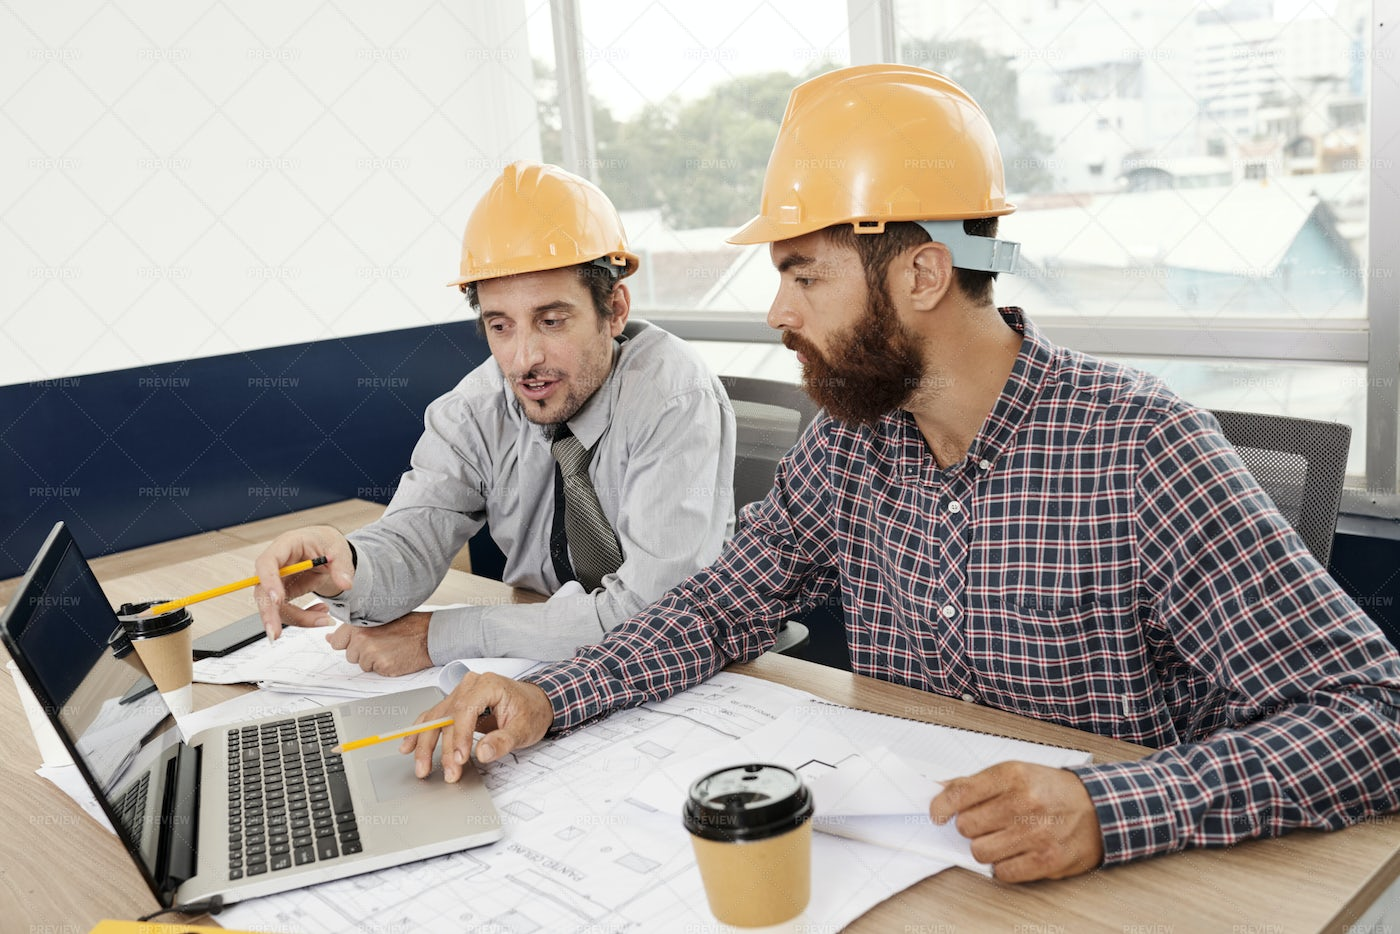 Engineers Discussing Project In Laptop: Stock Photos